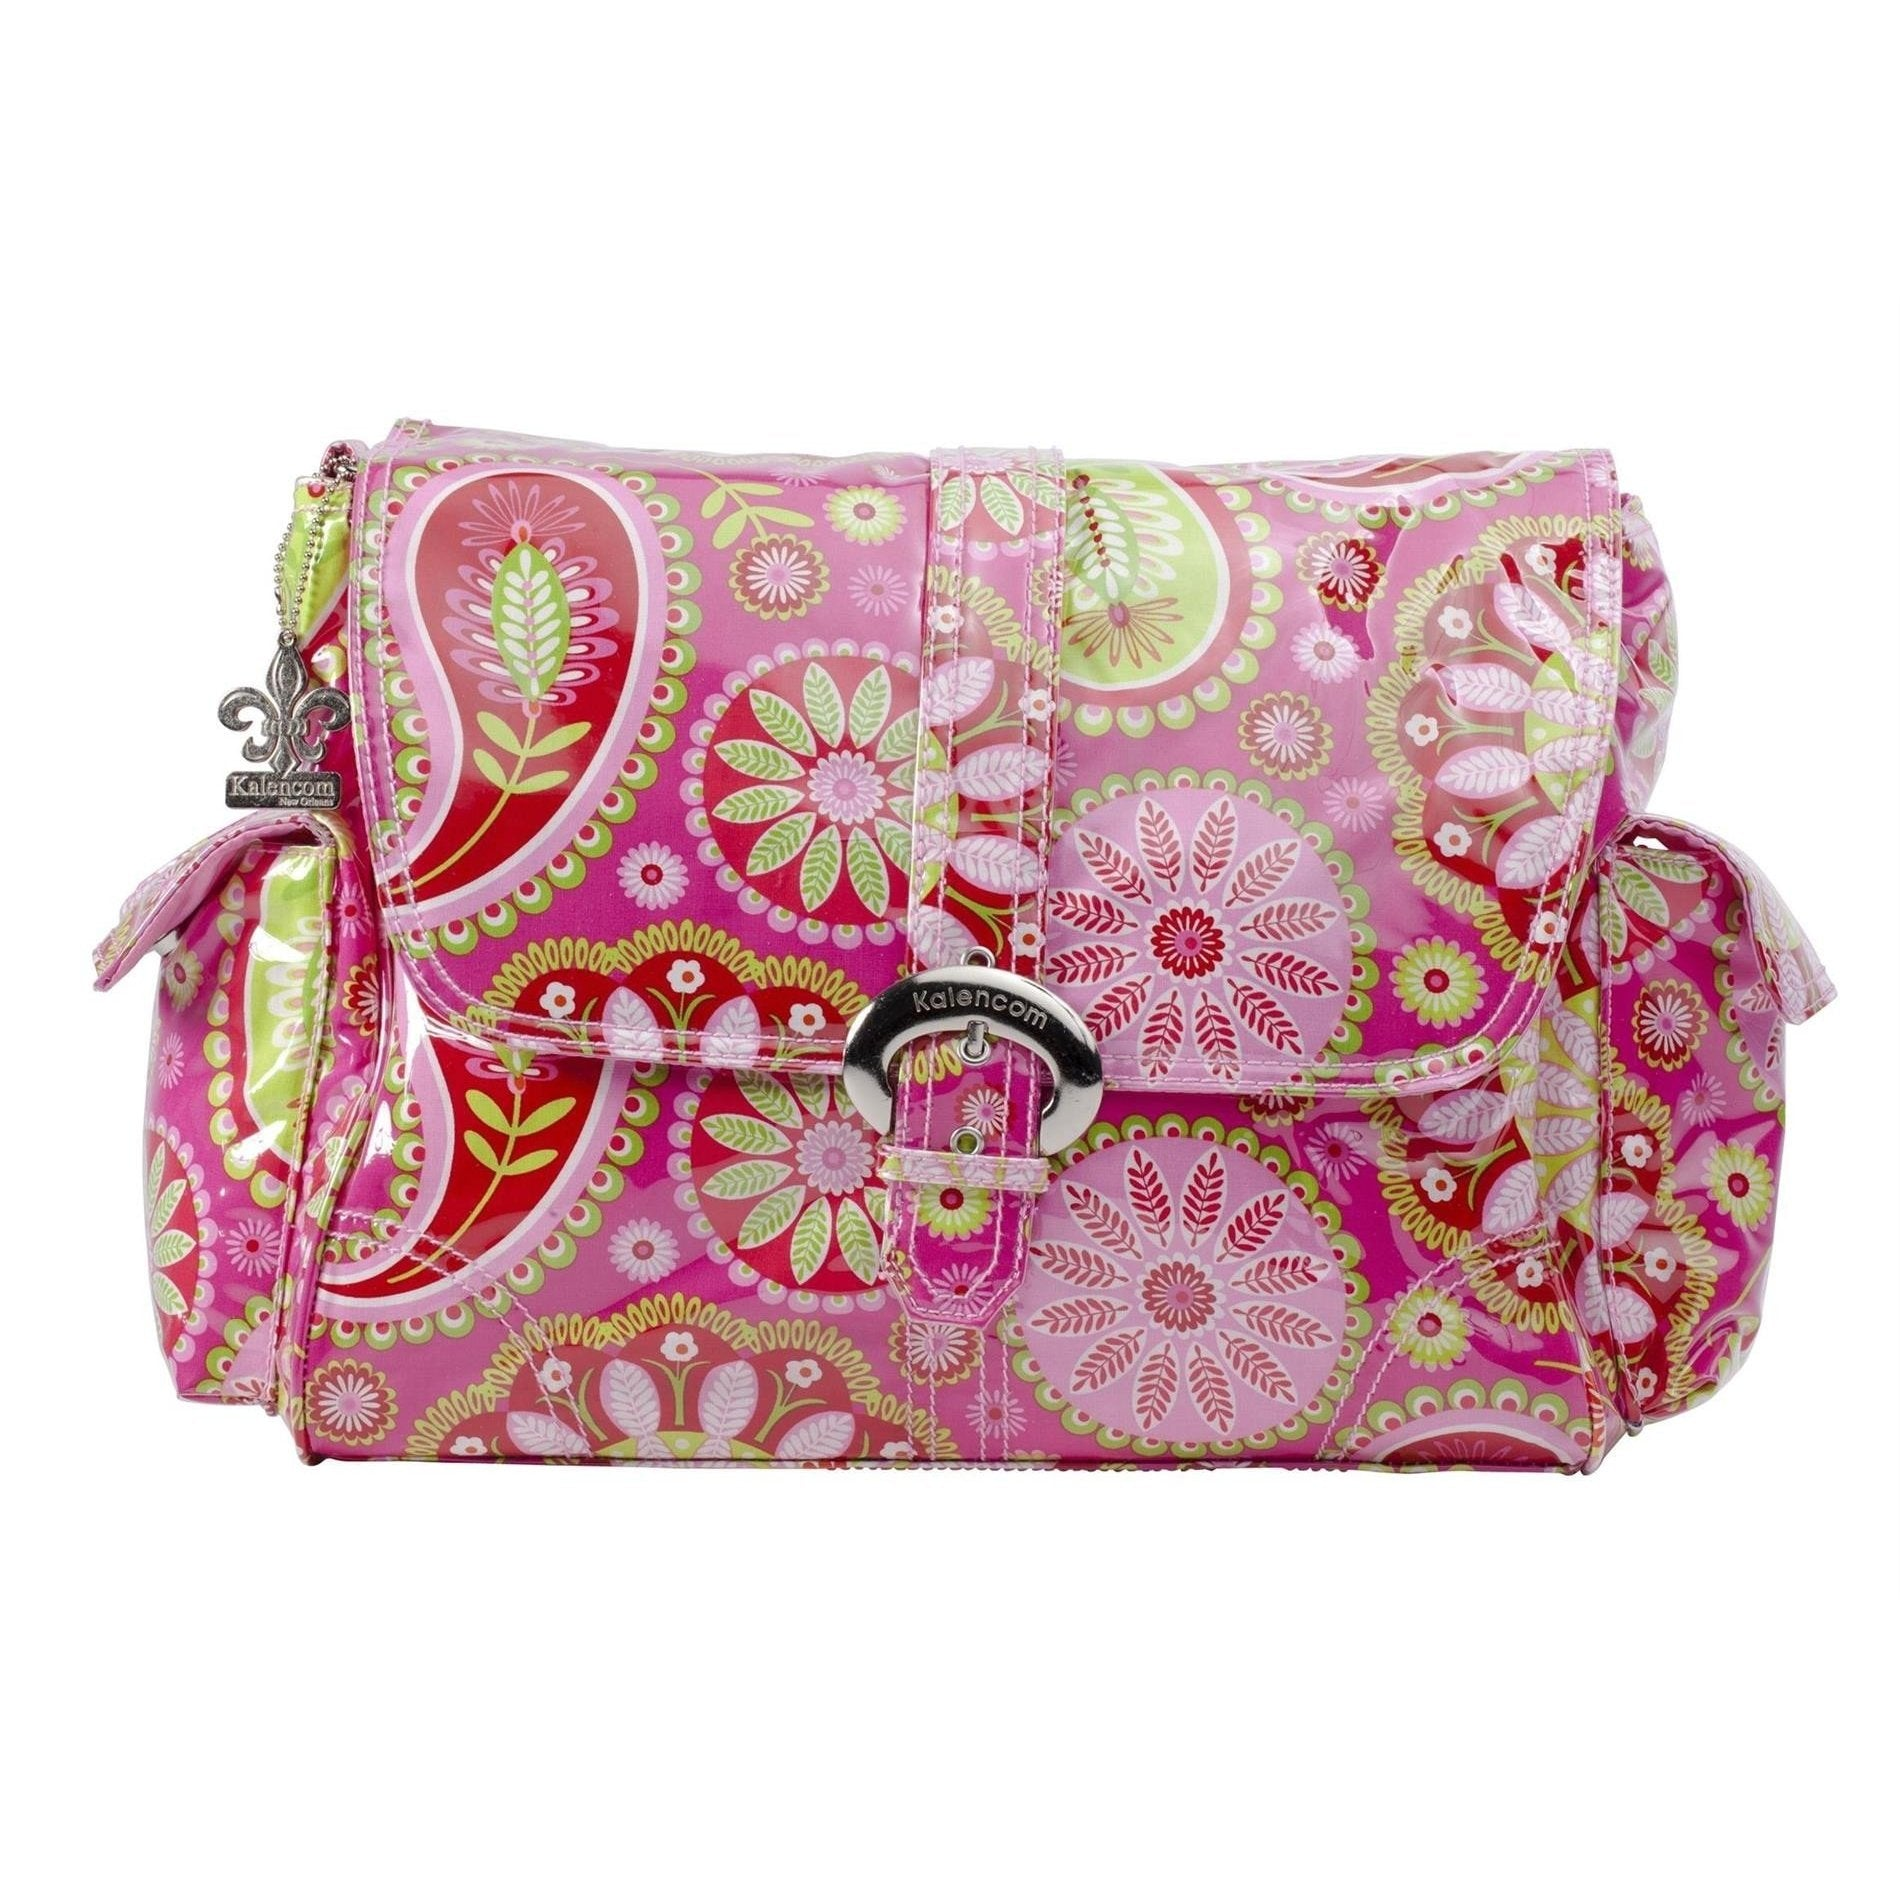 Gypsy Paisley Cotton Candy Laminated Buckle Diaper Bag | Style 2960 - Kalencom-Diaper Bags-Default-Jack and Jill Boutique